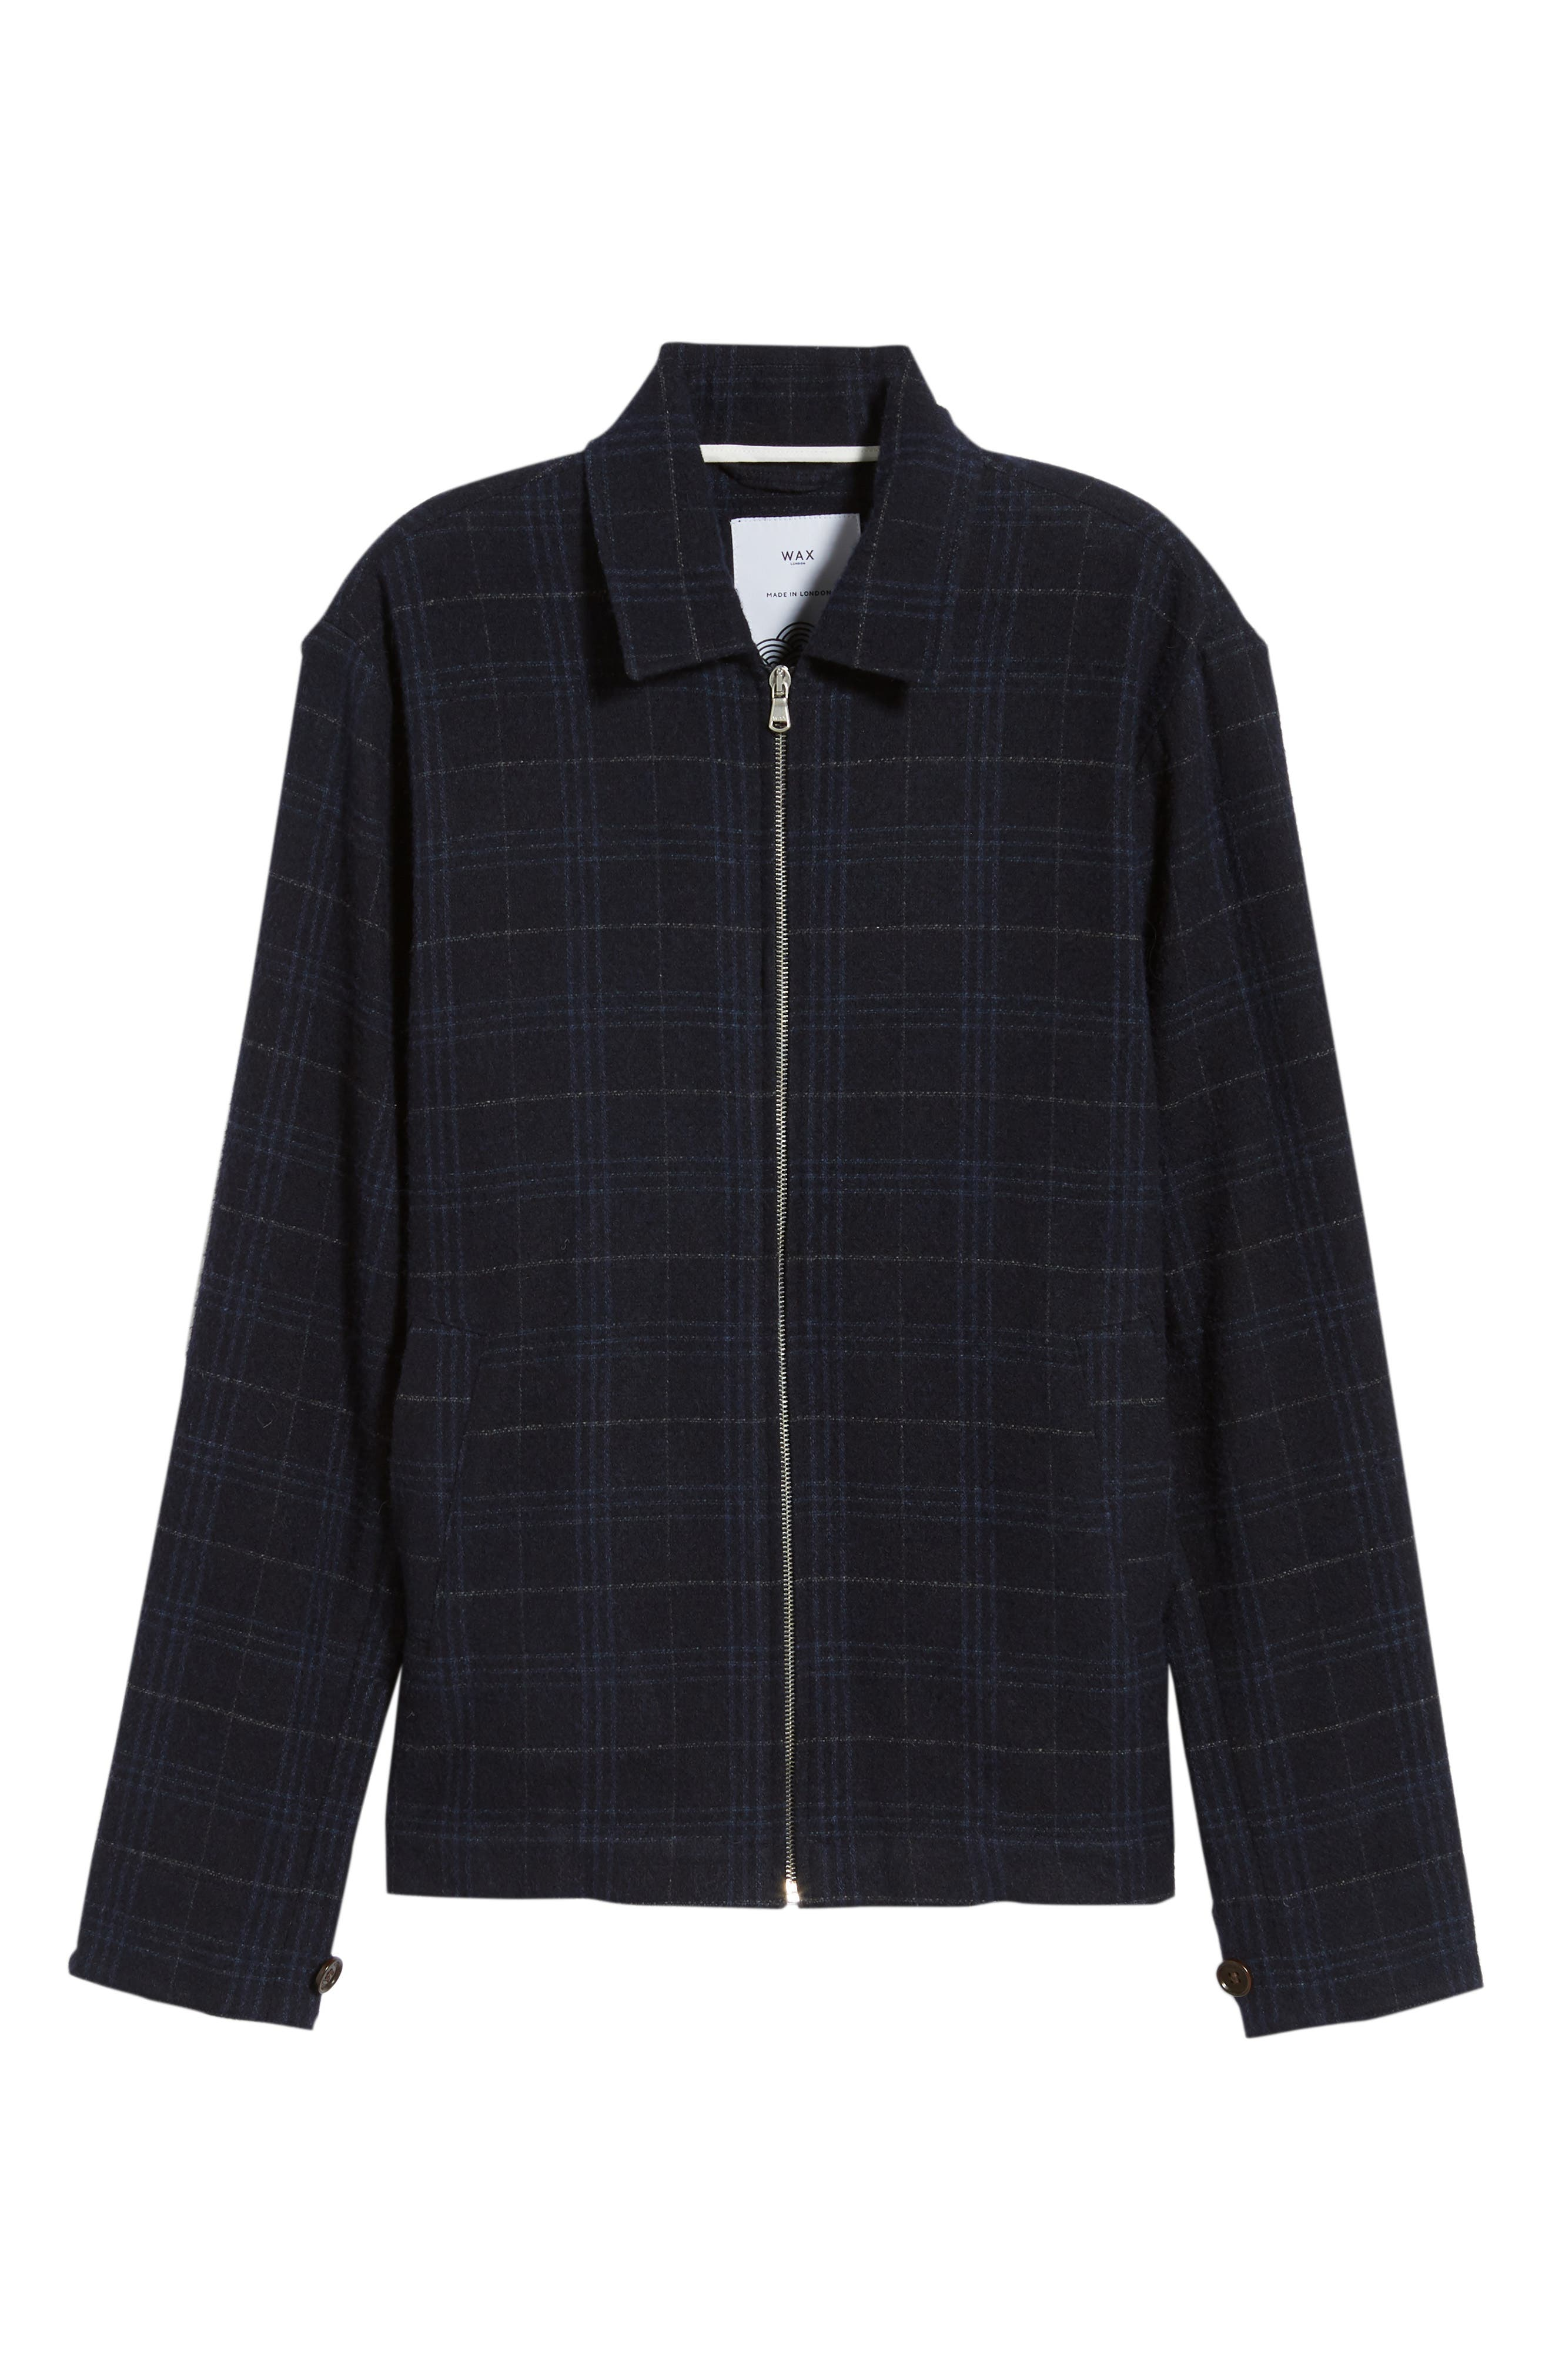 WAX LONDON,                             Witham Coach's Jacket,                             Alternate thumbnail 6, color,                             NAVY CHECK